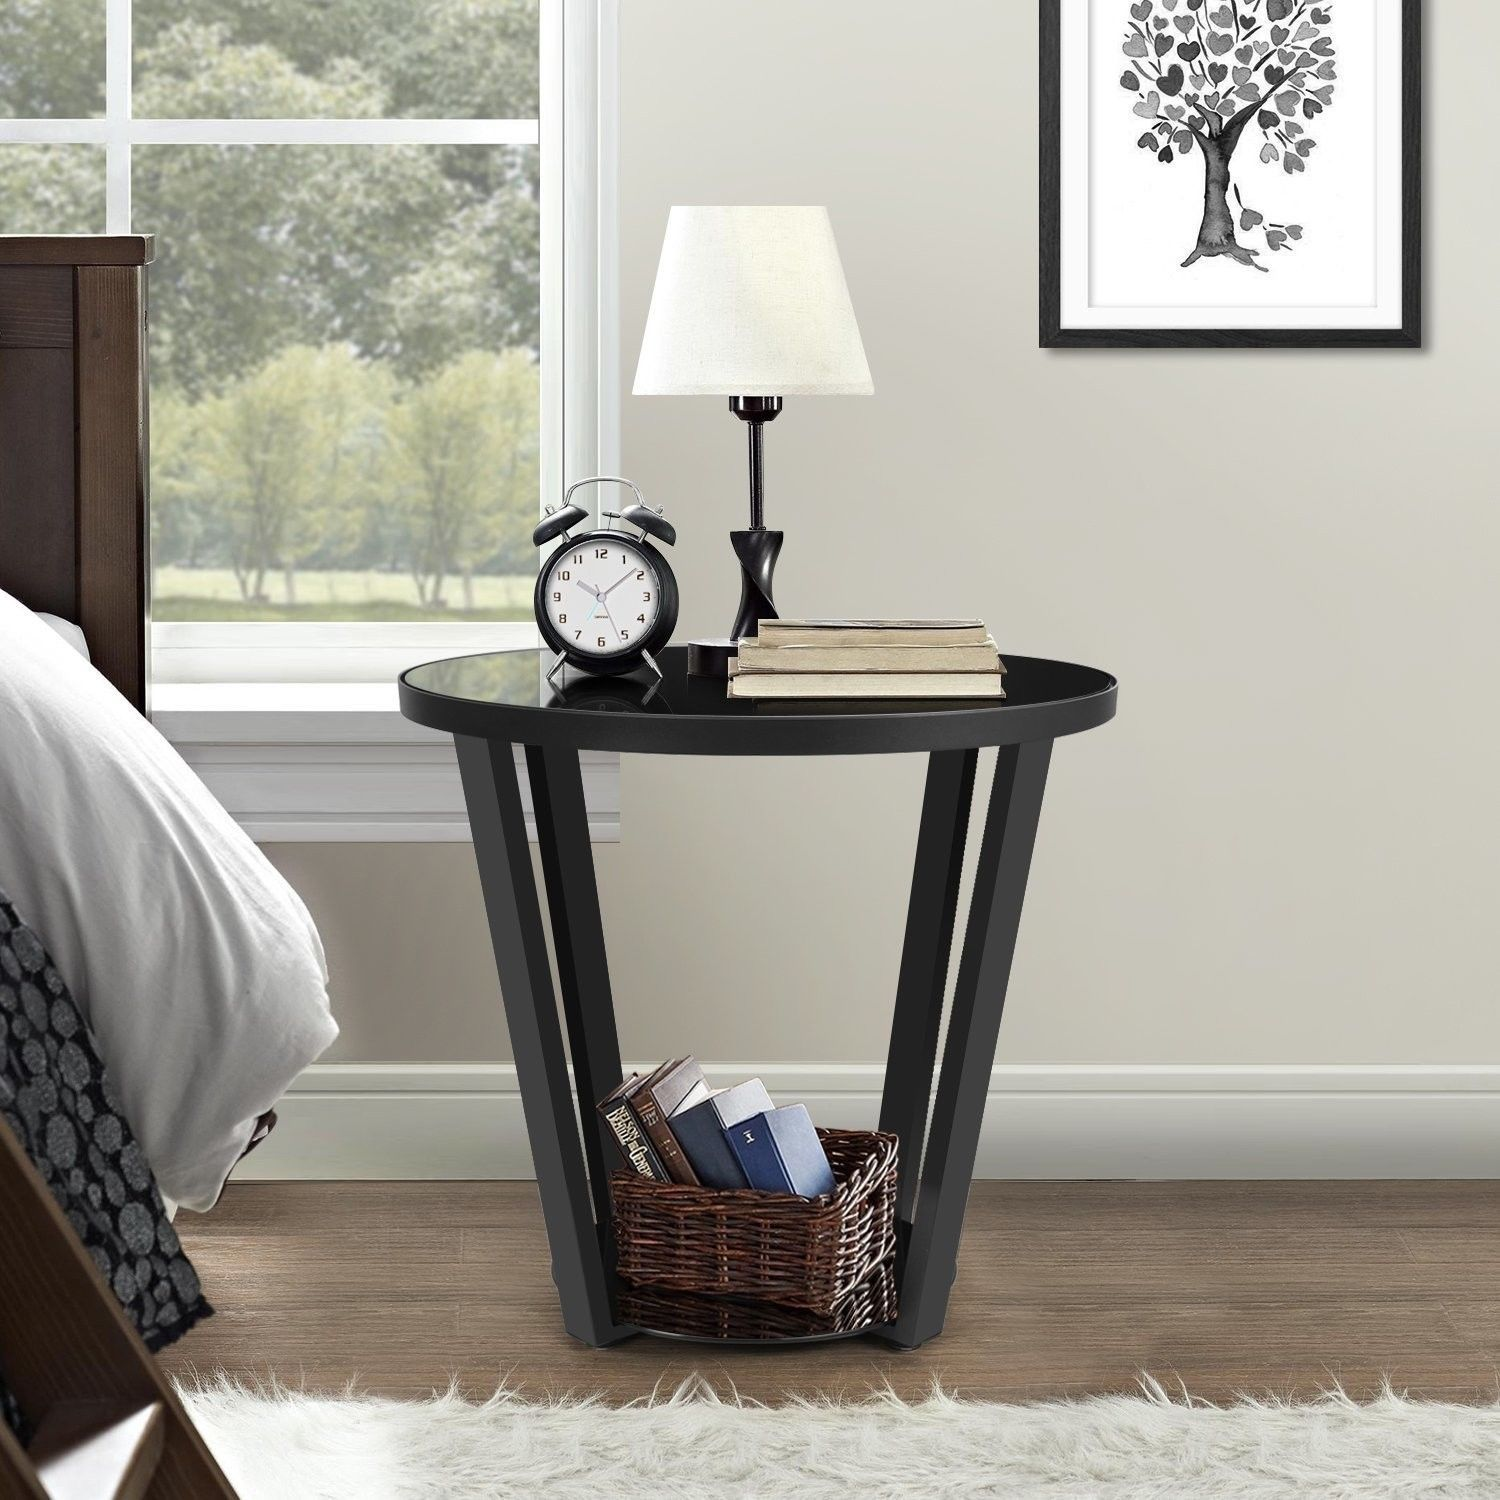 Modern Console Glass Table Steel Accent Shelf Entryway ...